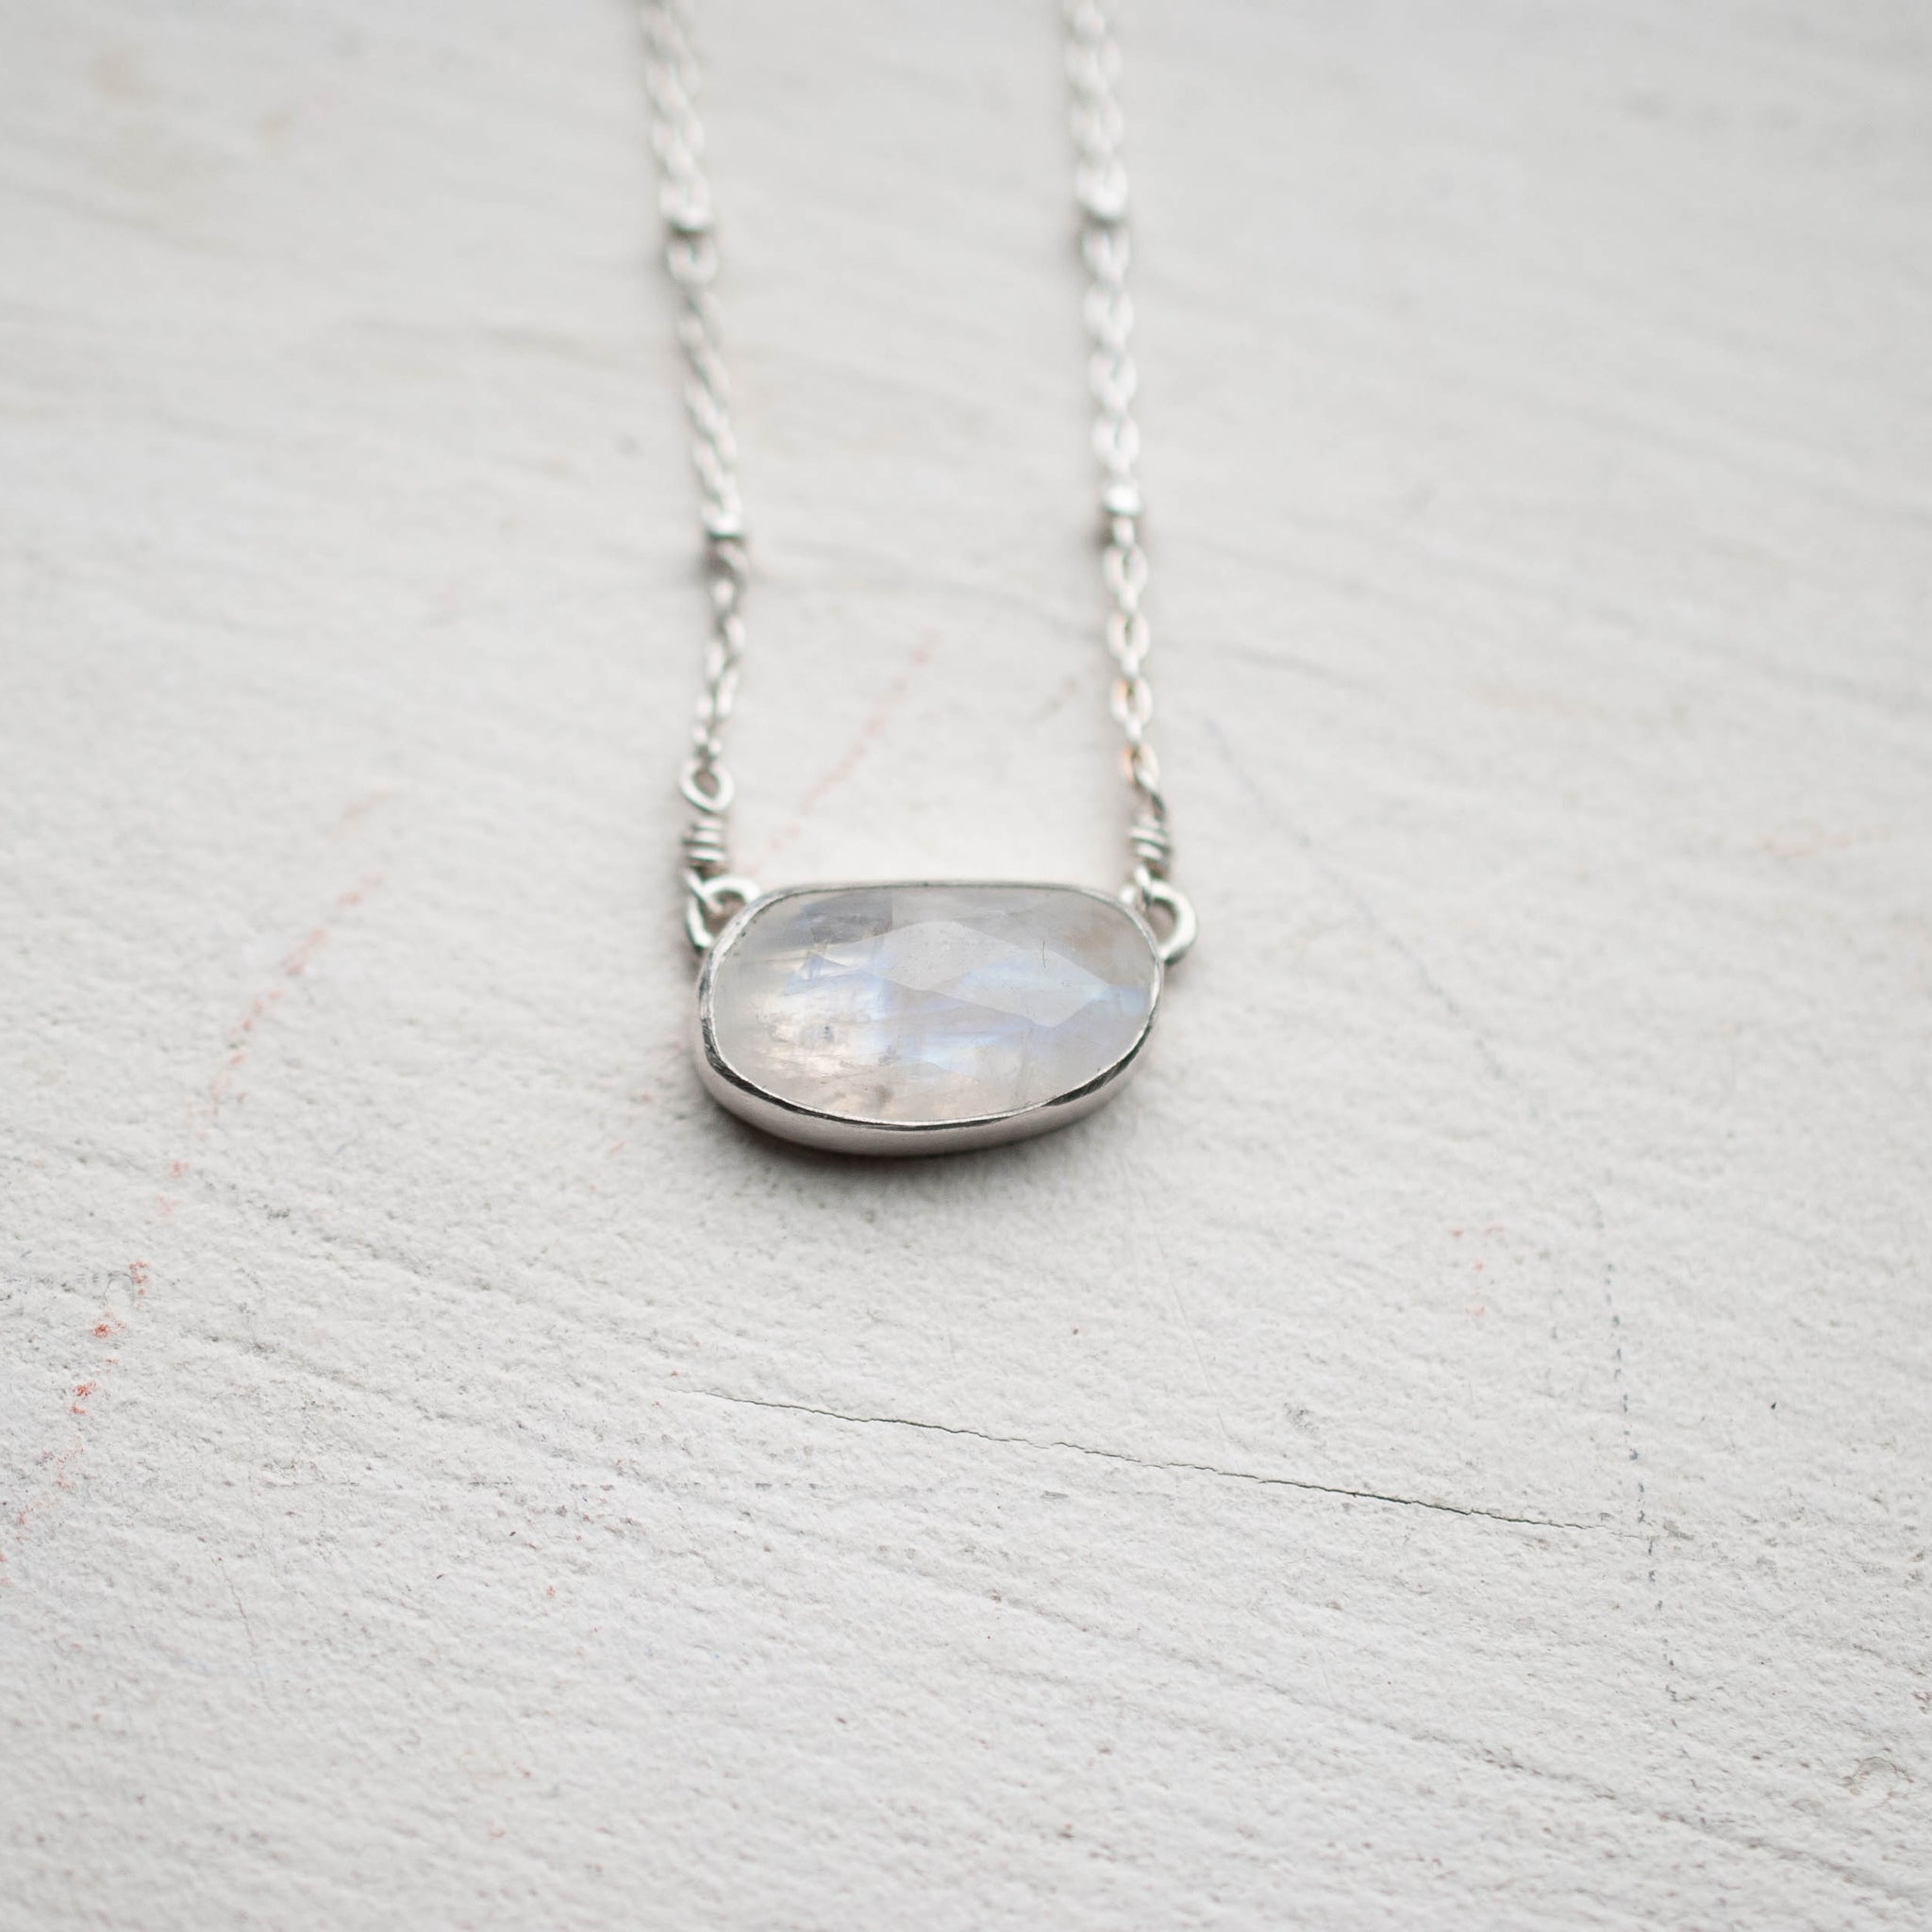 Delicate Moonstone Necklace 5